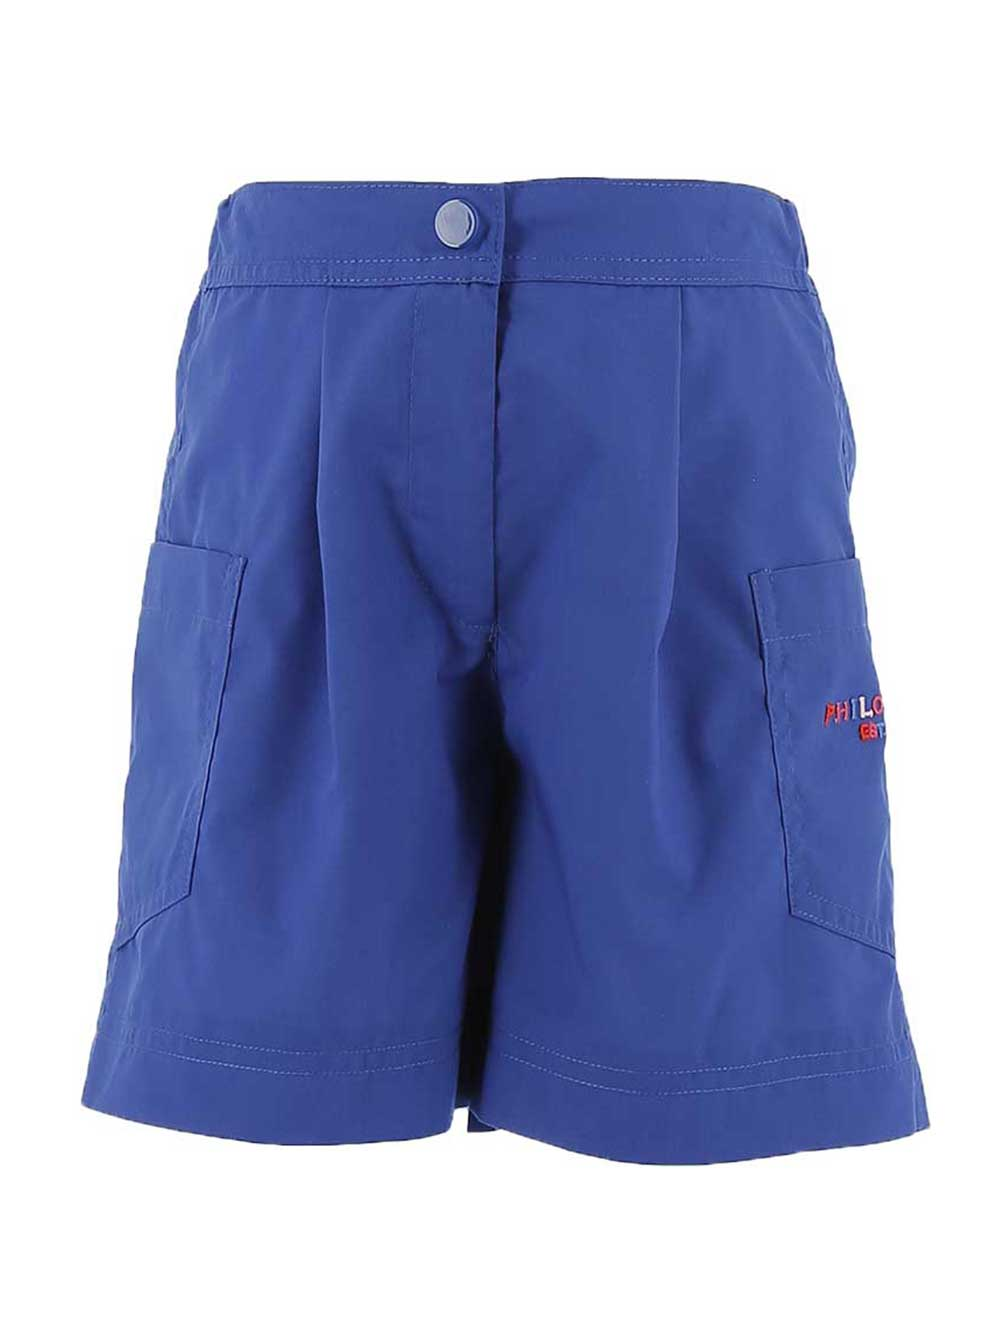 Blue Pocket Philosophy Shorts